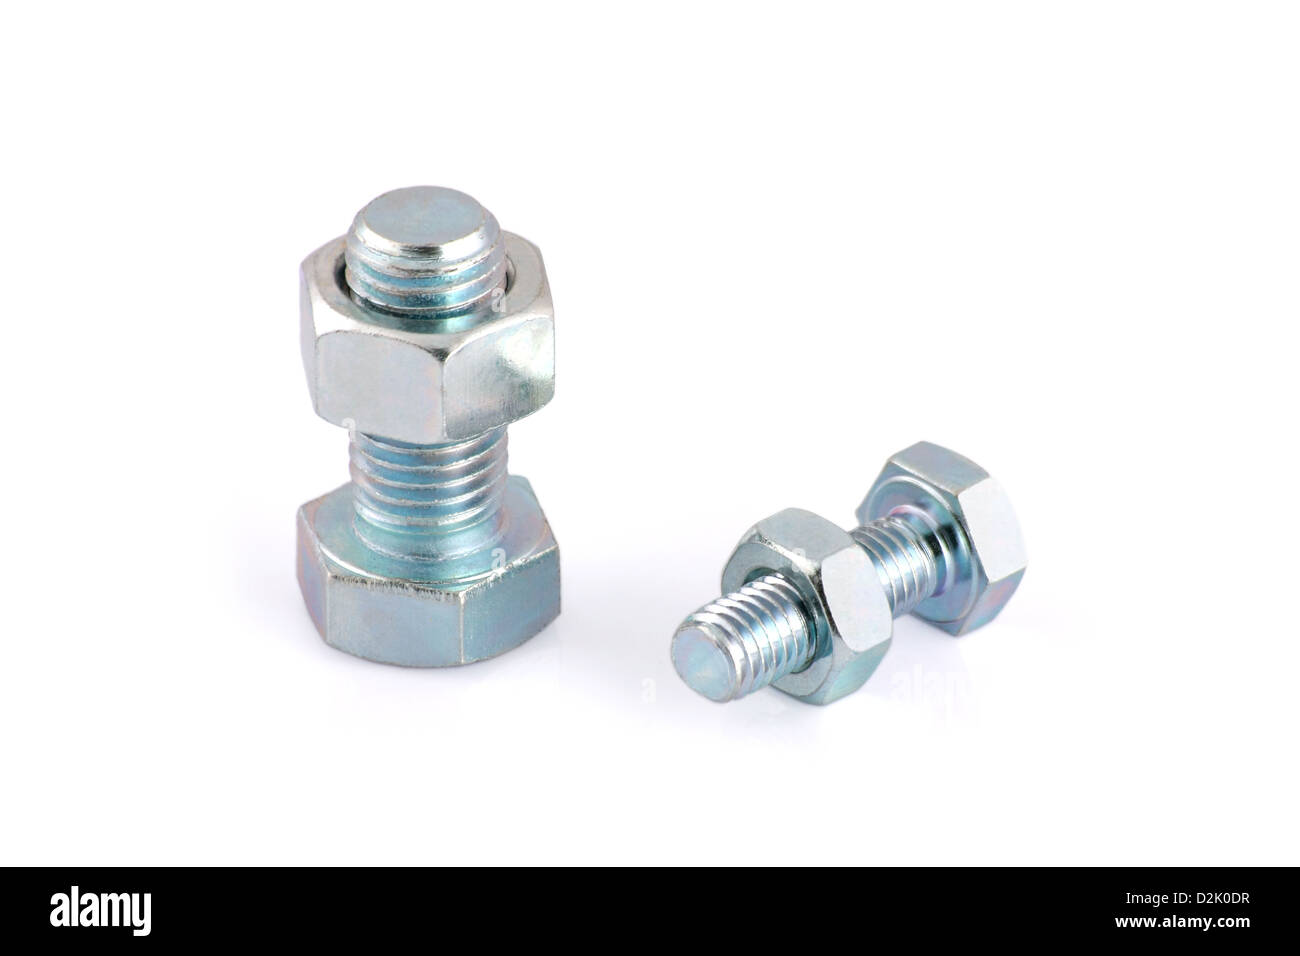 Two steel hexagon bolts and nuts isolated on white background - Stock Image